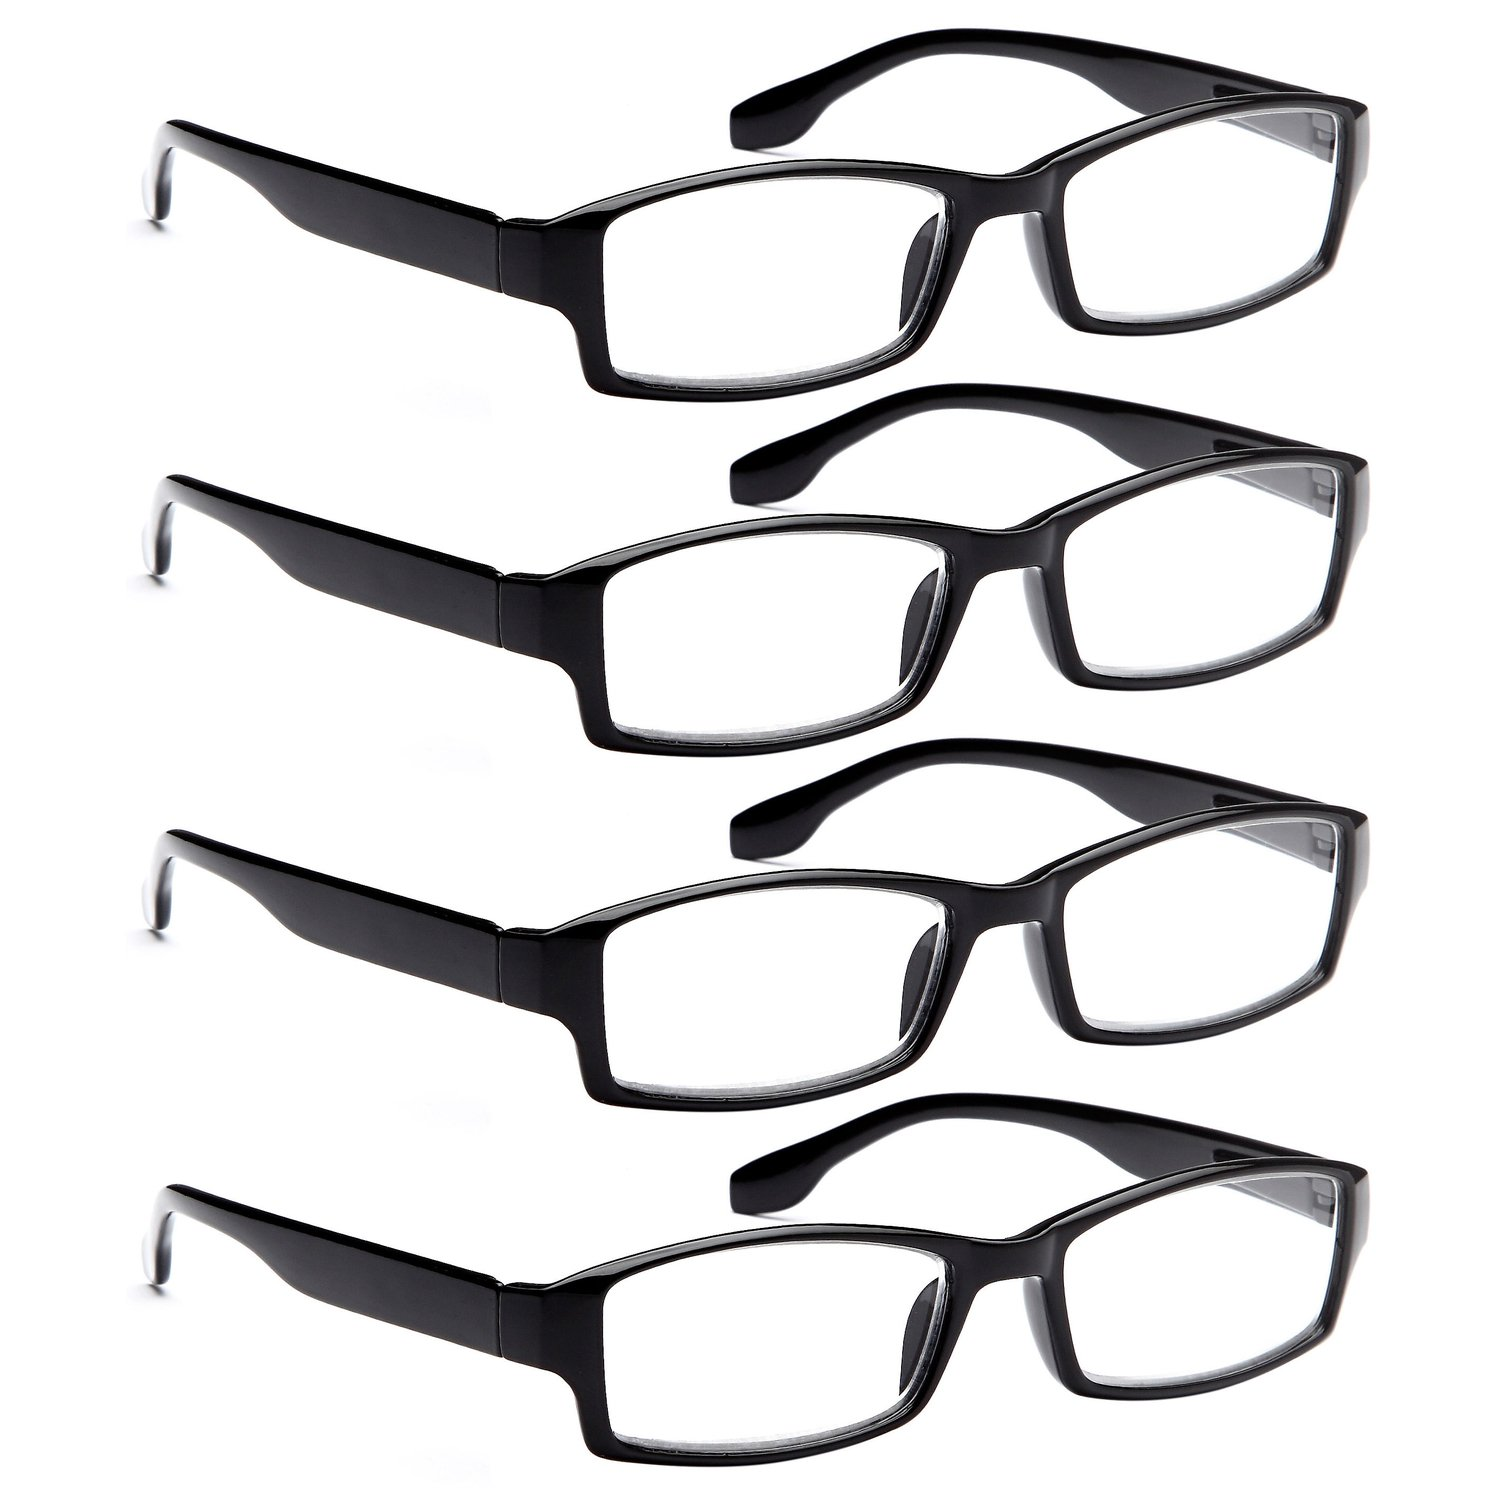 ALTEC VISION 4 Pack Spring Hinge Black Frame Readers Reading Glasses for Men and Women - 1.75x